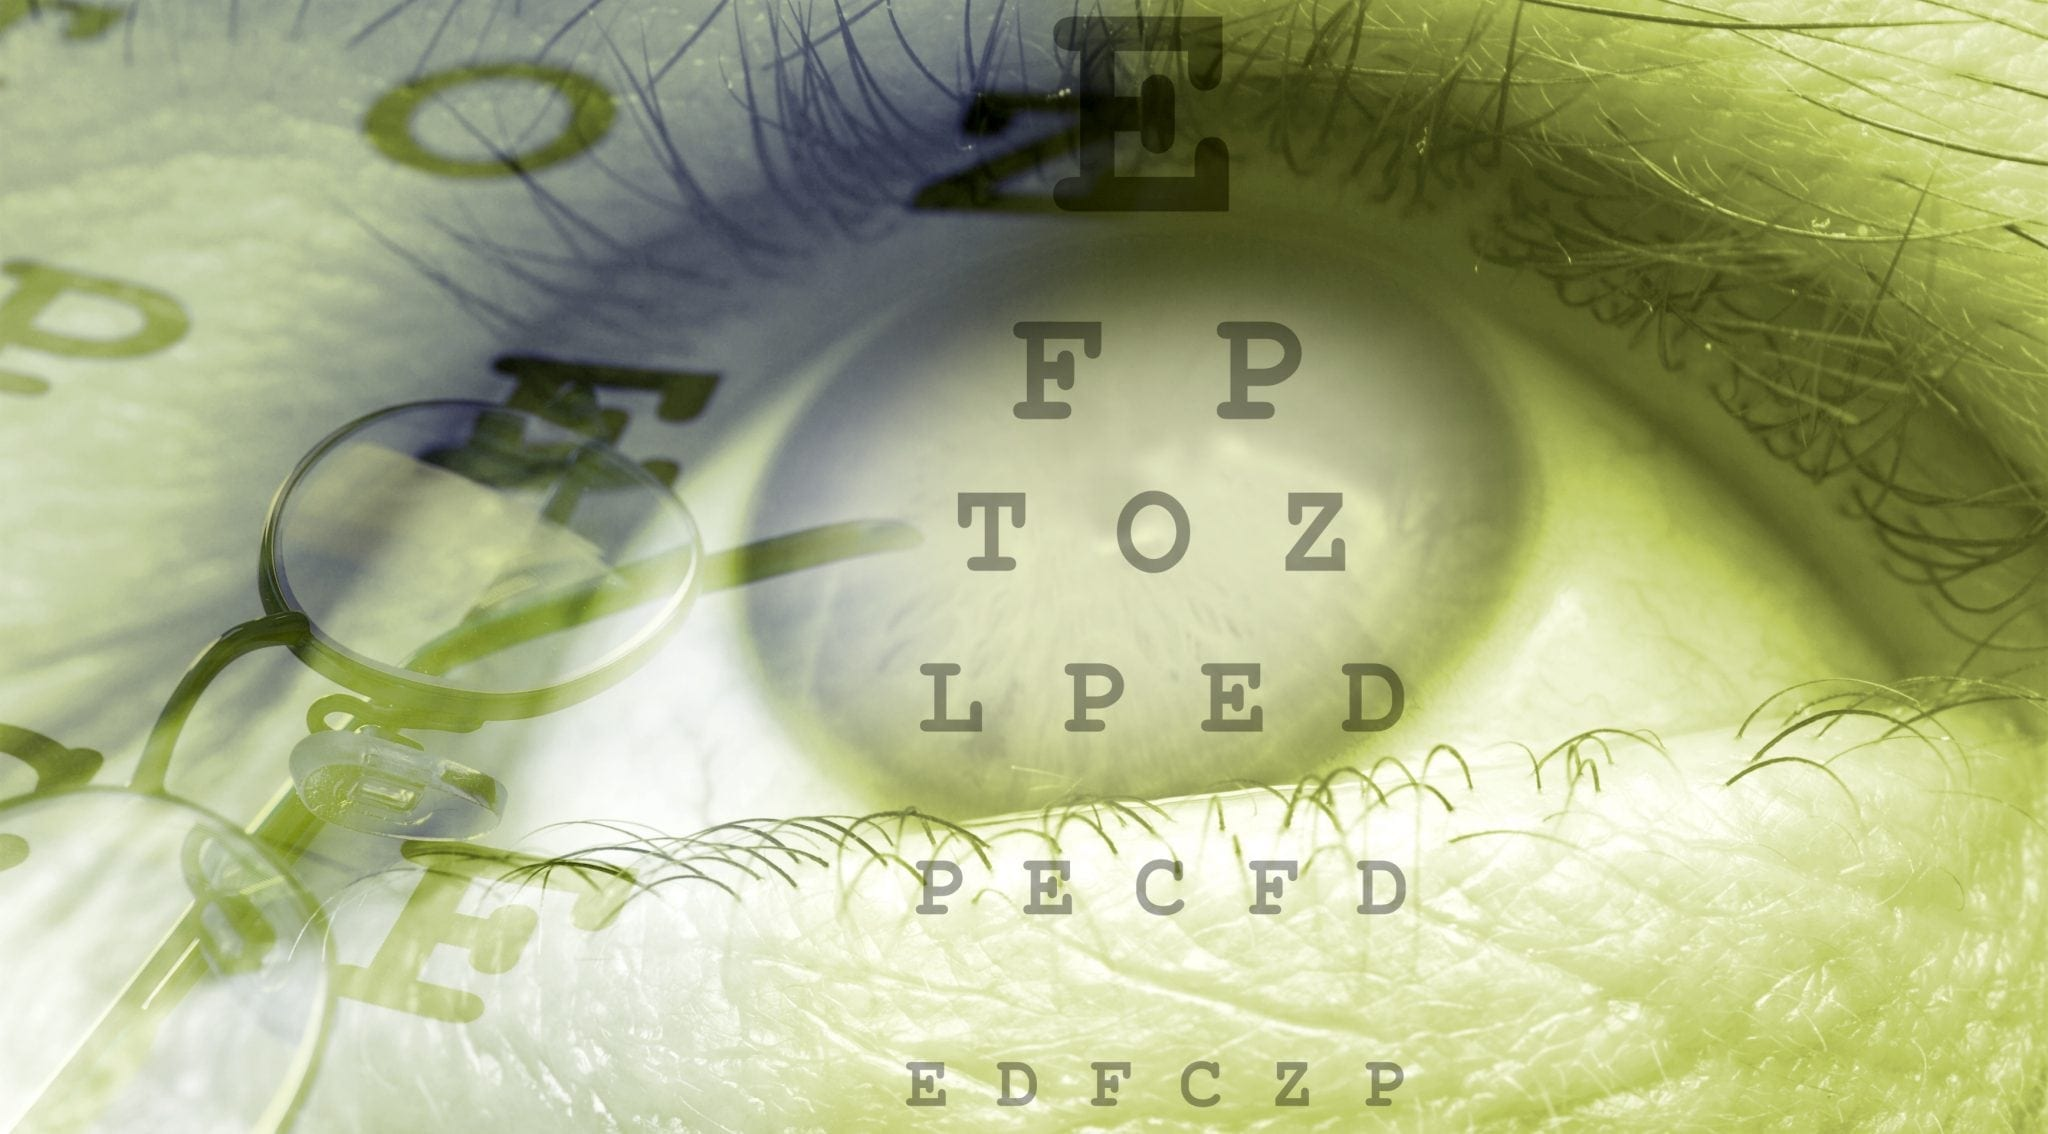 Eyesight test for driving license eye chart nvjuhfo Image collections